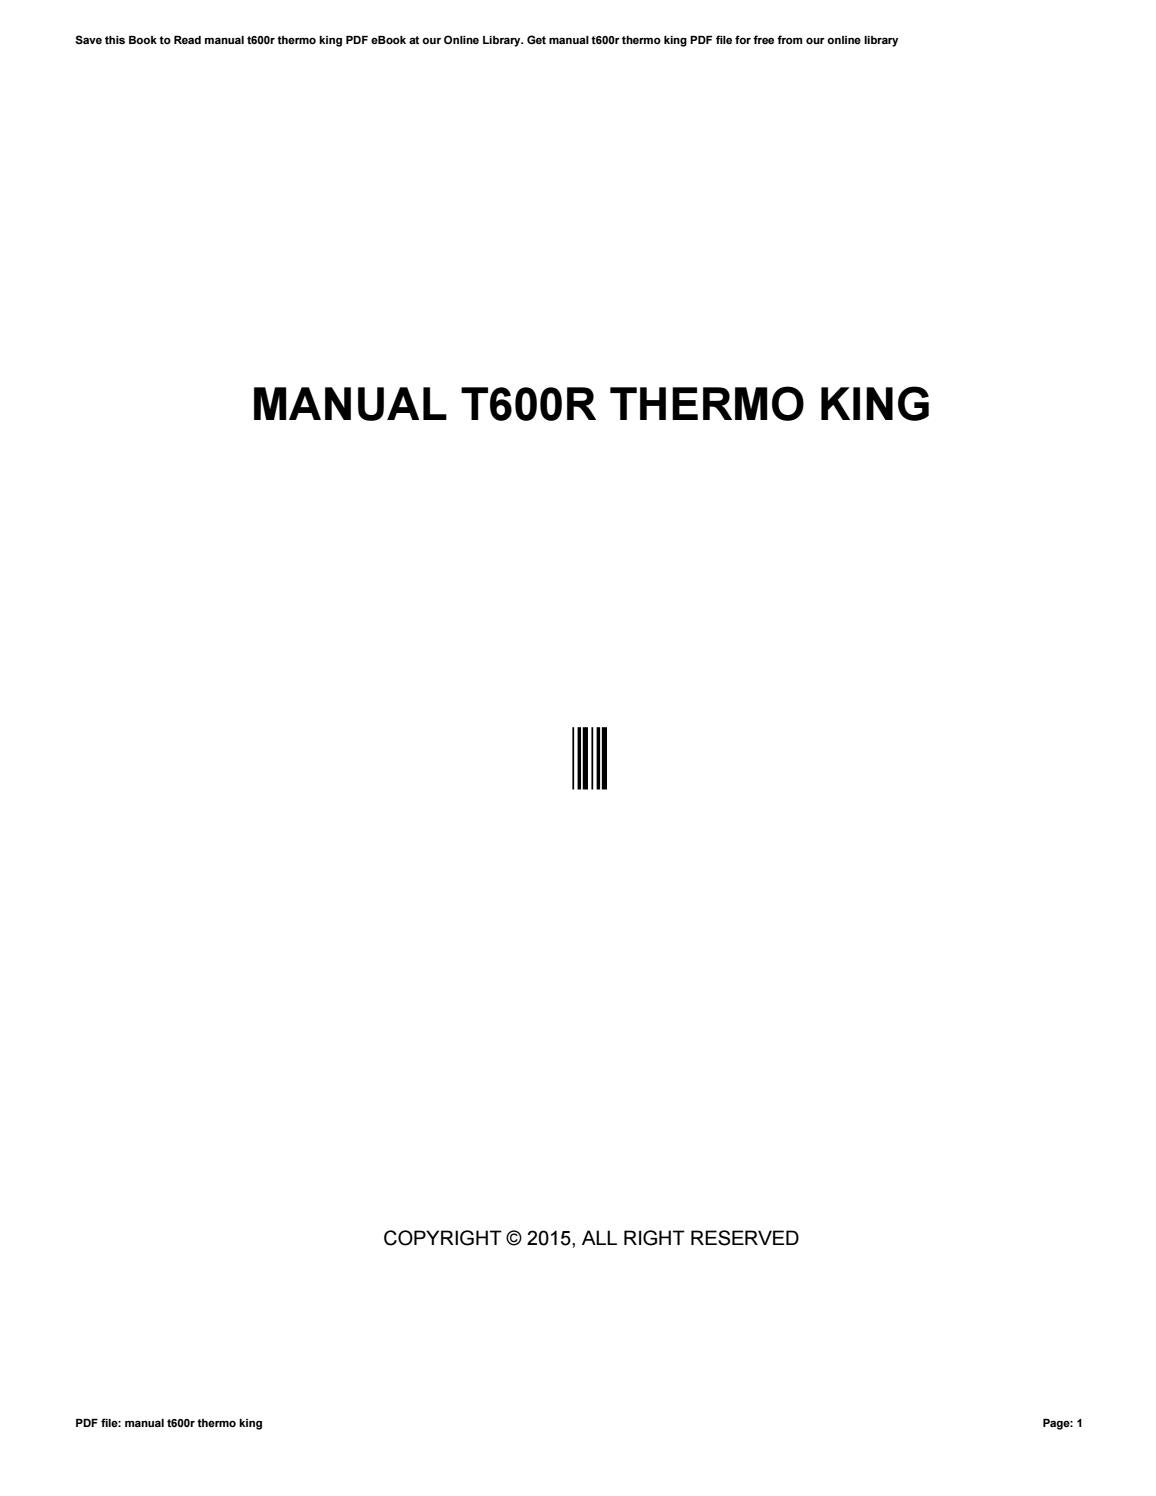 Manual t600r thermo king by toon061 - issuu